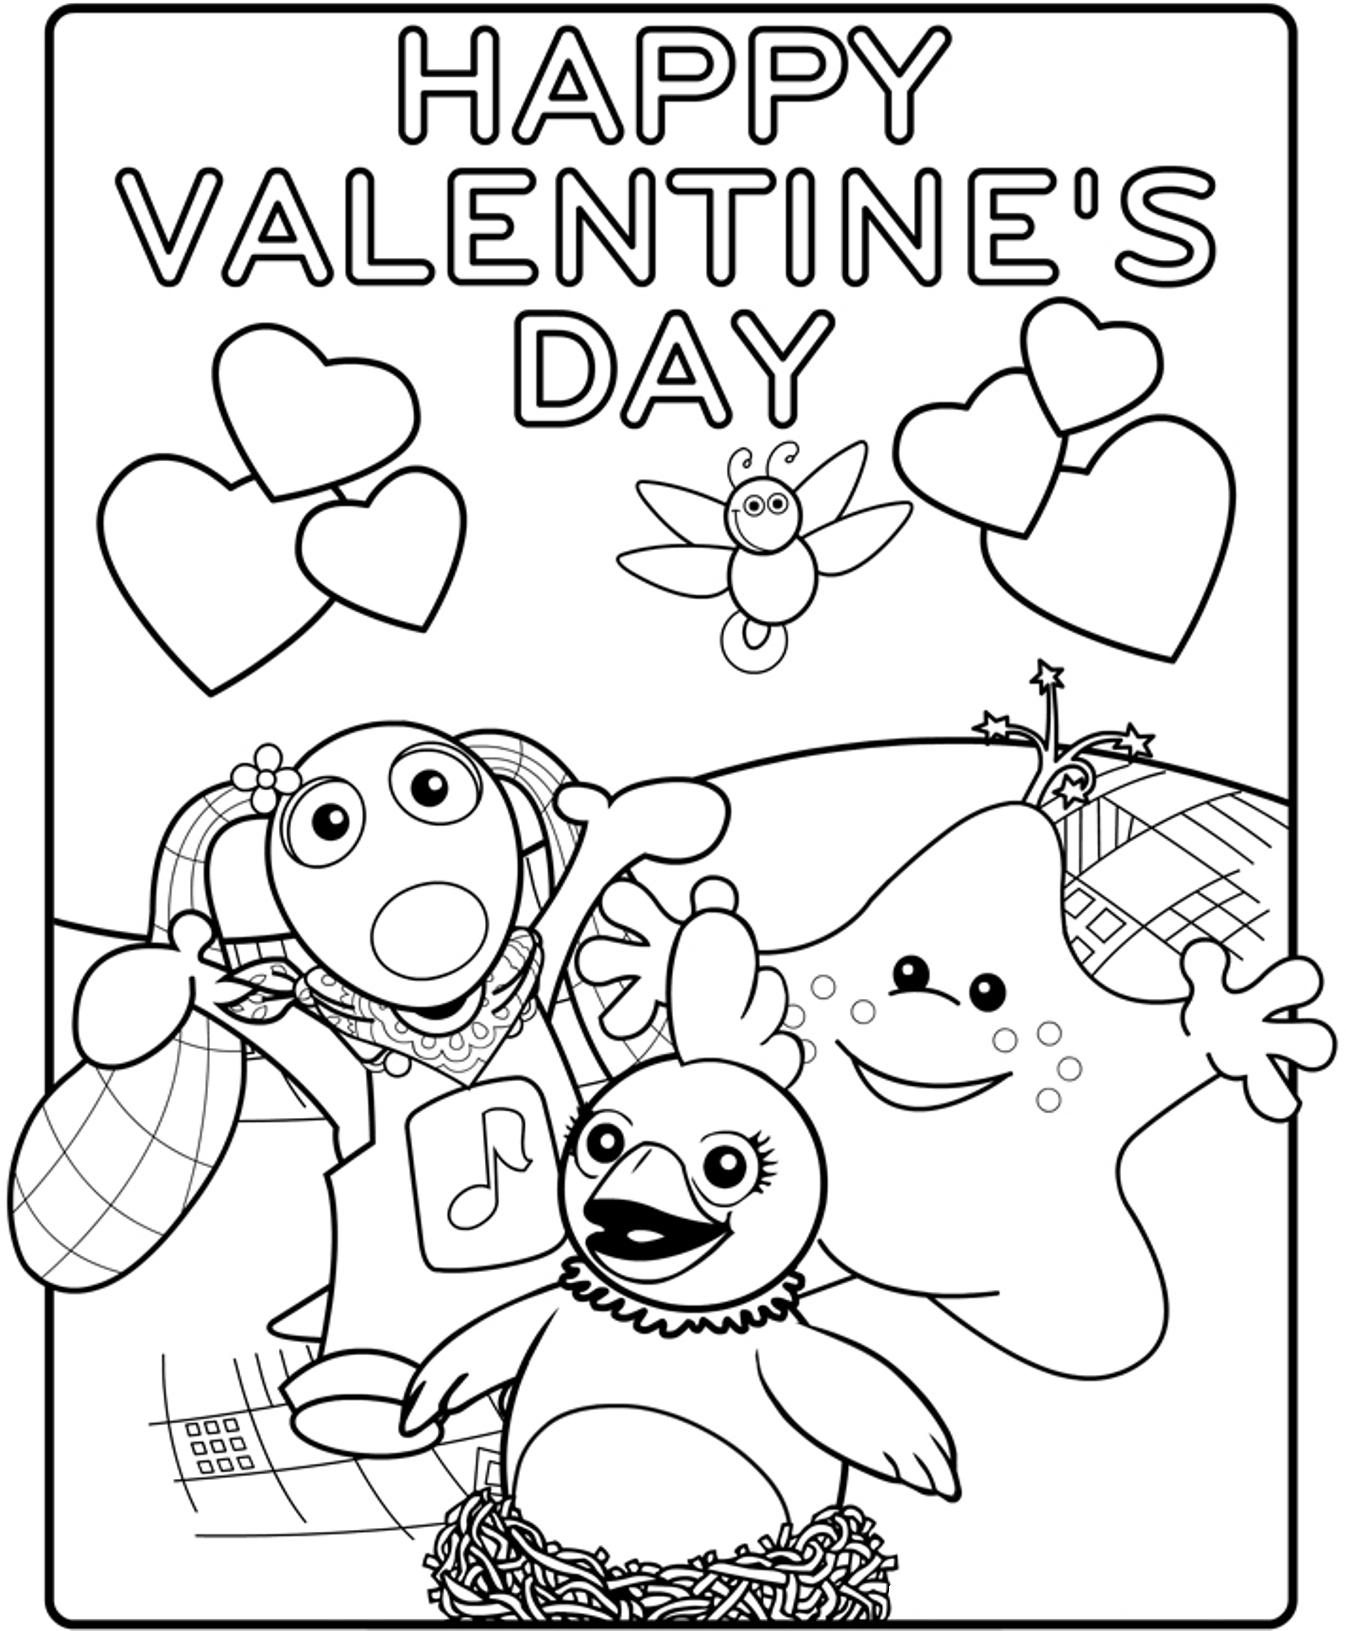 Printable Valentines Day Cards - Best Coloring Pages For Kids | 1631x1346